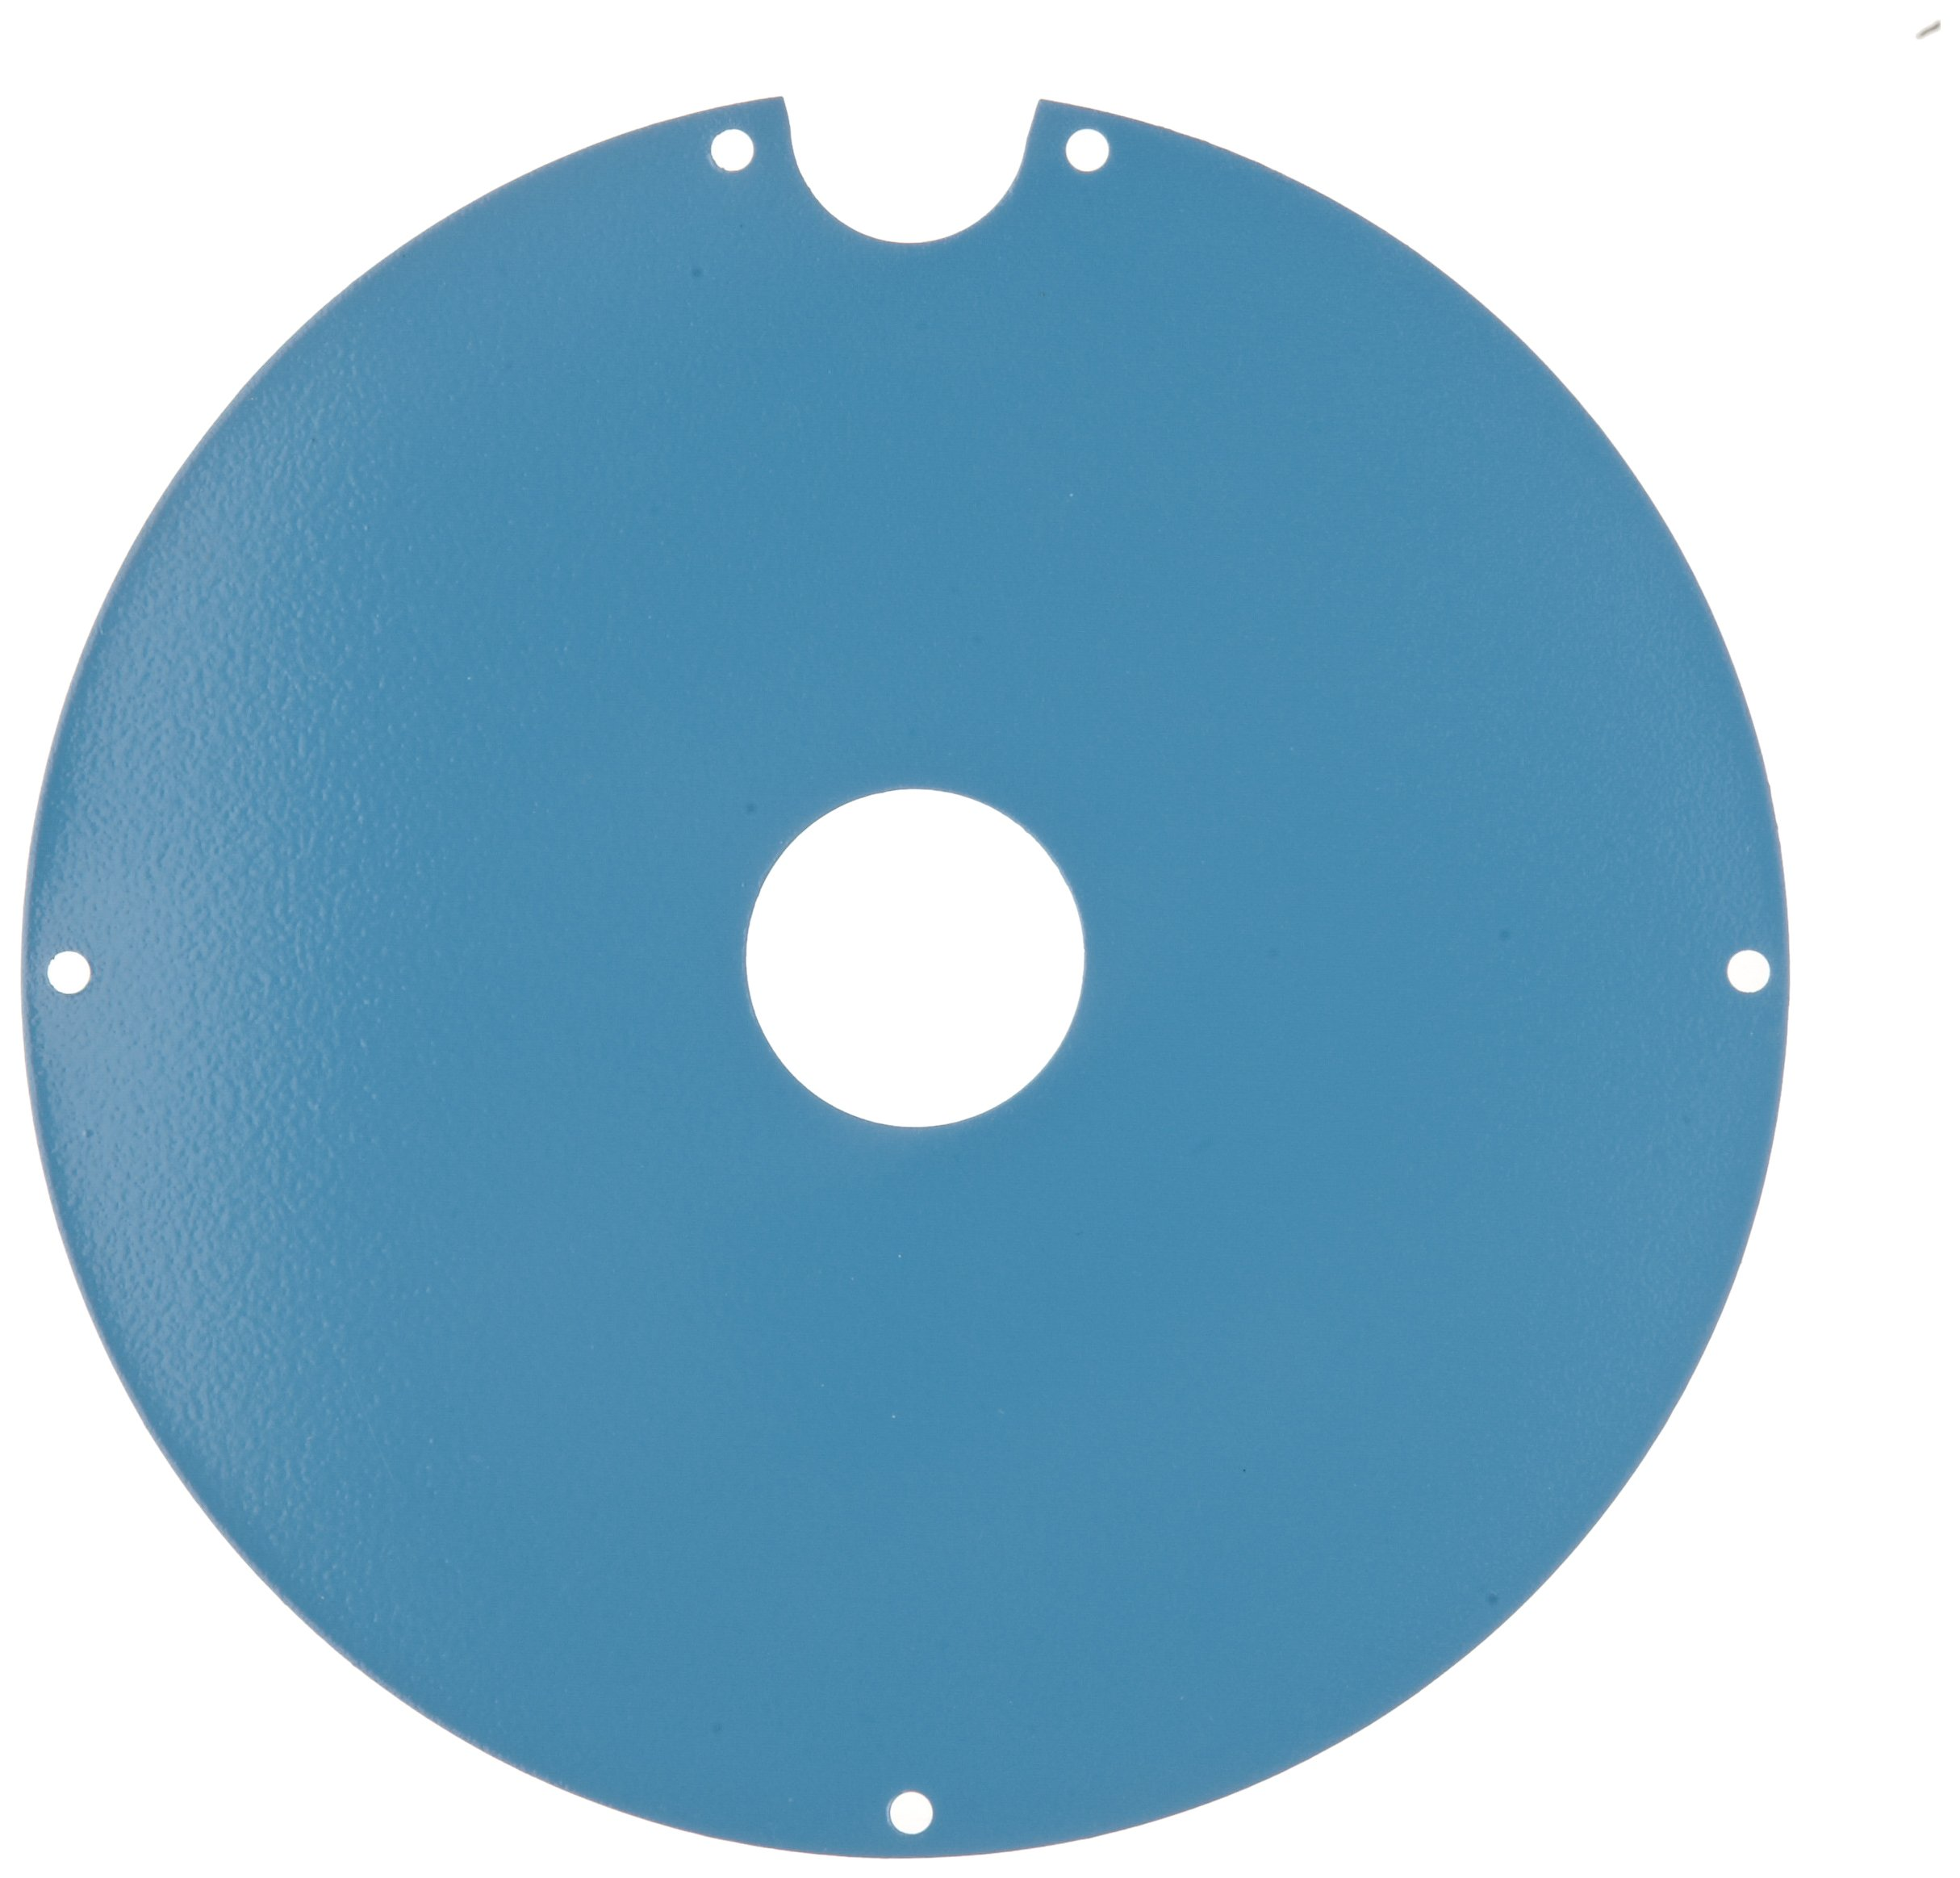 Thomas 260 Cover Plate, For Stormer Viscometer